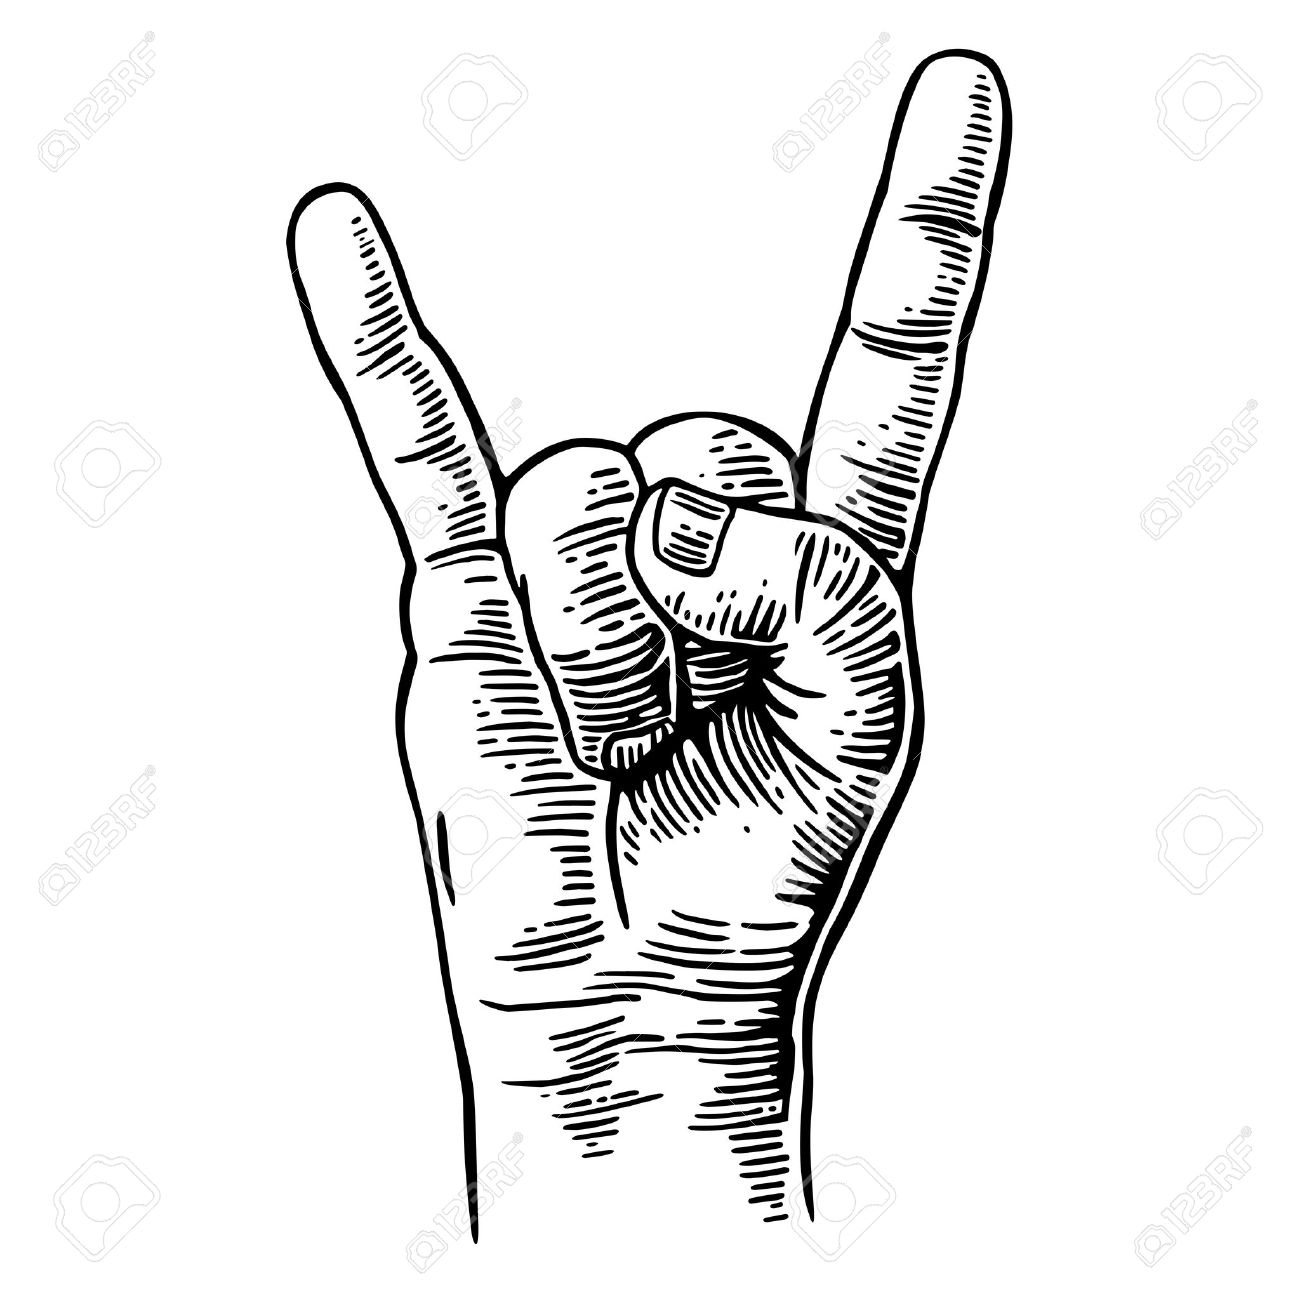 Rock and roll hand sign vector black vintage engraved rock and roll hand sign vector black vintage engraved illustration hand giving the devil biocorpaavc Gallery